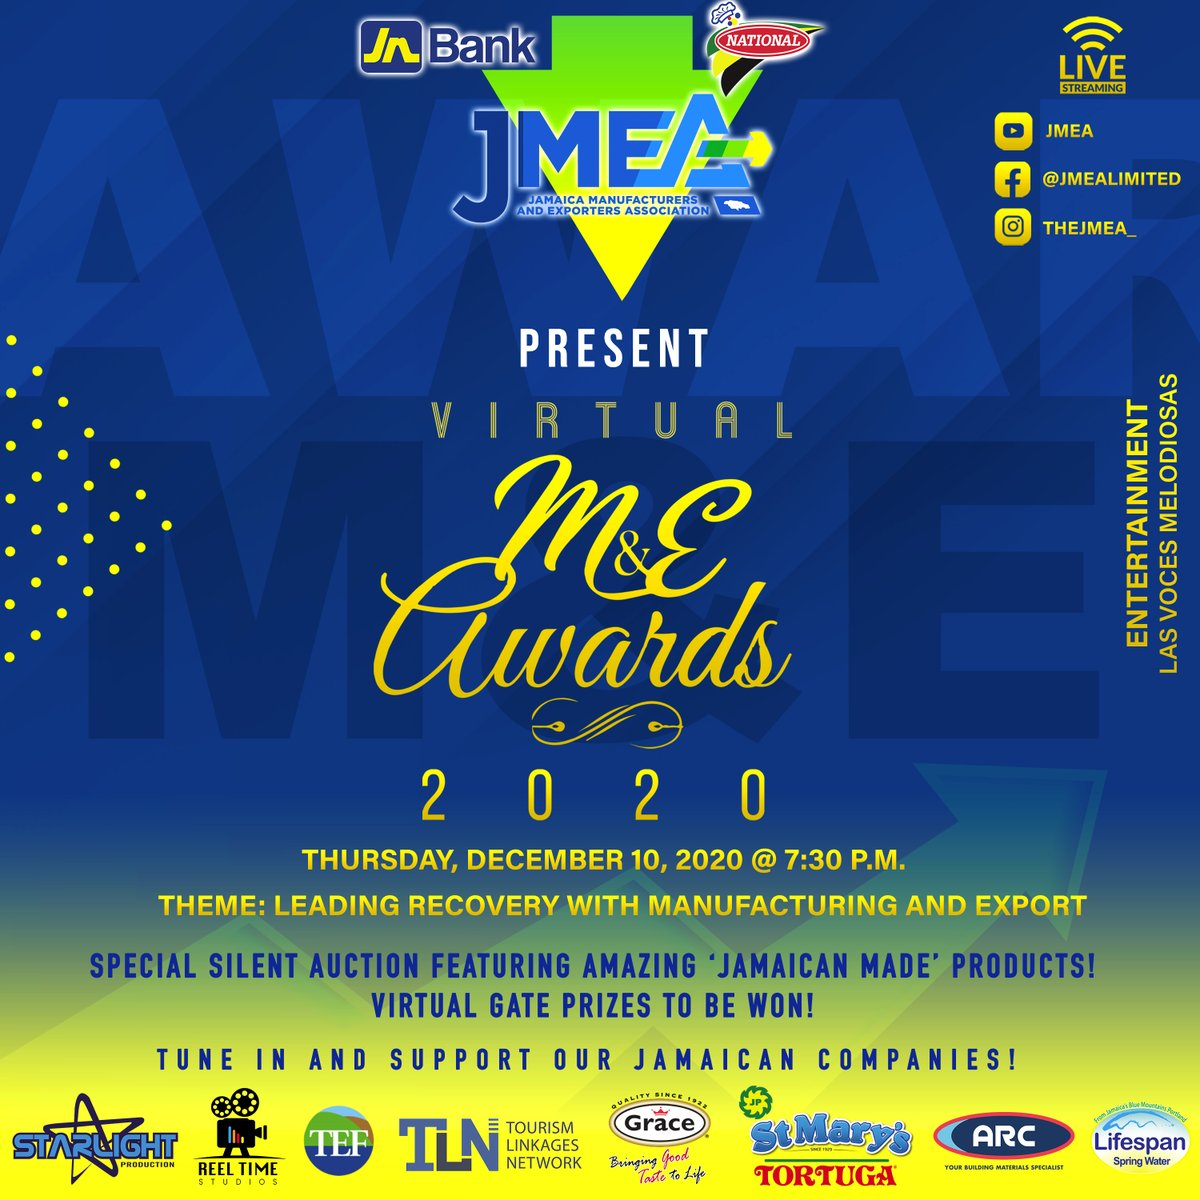 Tune in to the JMEA M&E Awards 2020 on Thursday, December 10, 2020 @ 7:30 p.m. via live stream on our IG, FB and YouTube platforms.  It's all about celebrating our #manufacturers and #exporters  See you on Thursday! https://t.co/KLHTB6mxFk